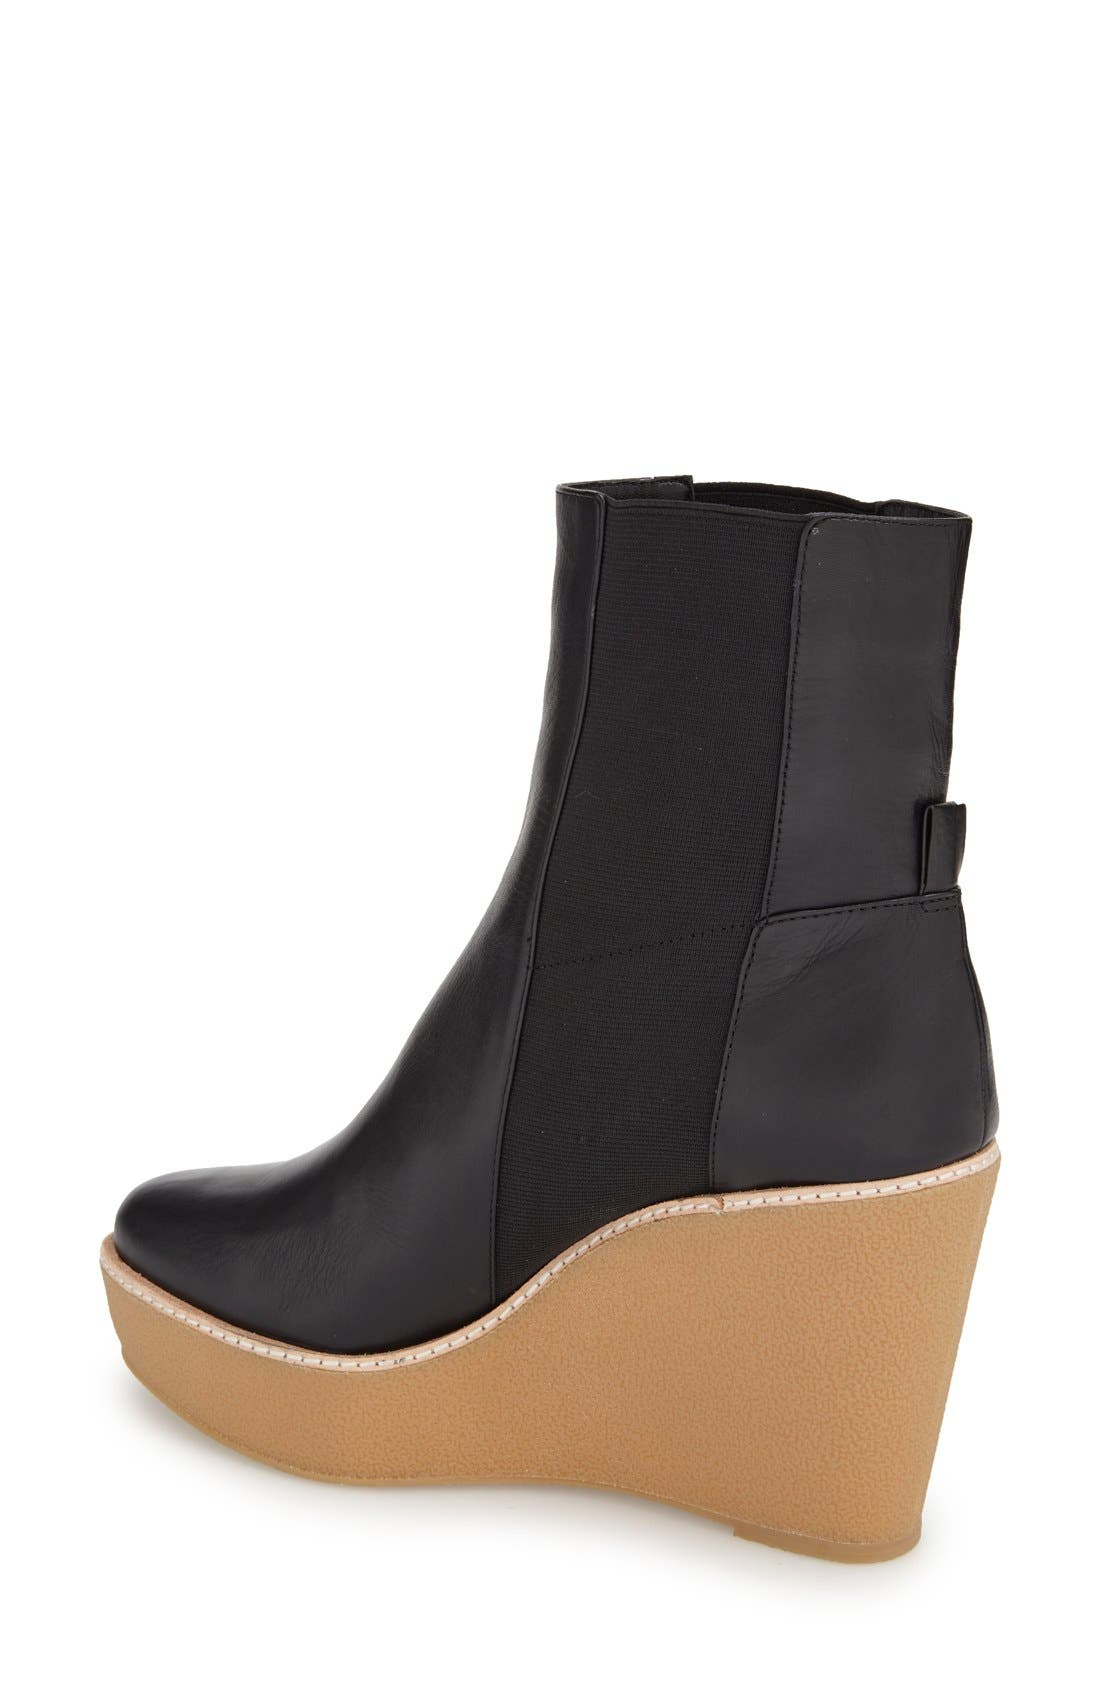 Alternate Image 2  - Derek Lam 10 Crosby 'Sandy' Almond Toe Wedge Bootie (Women)